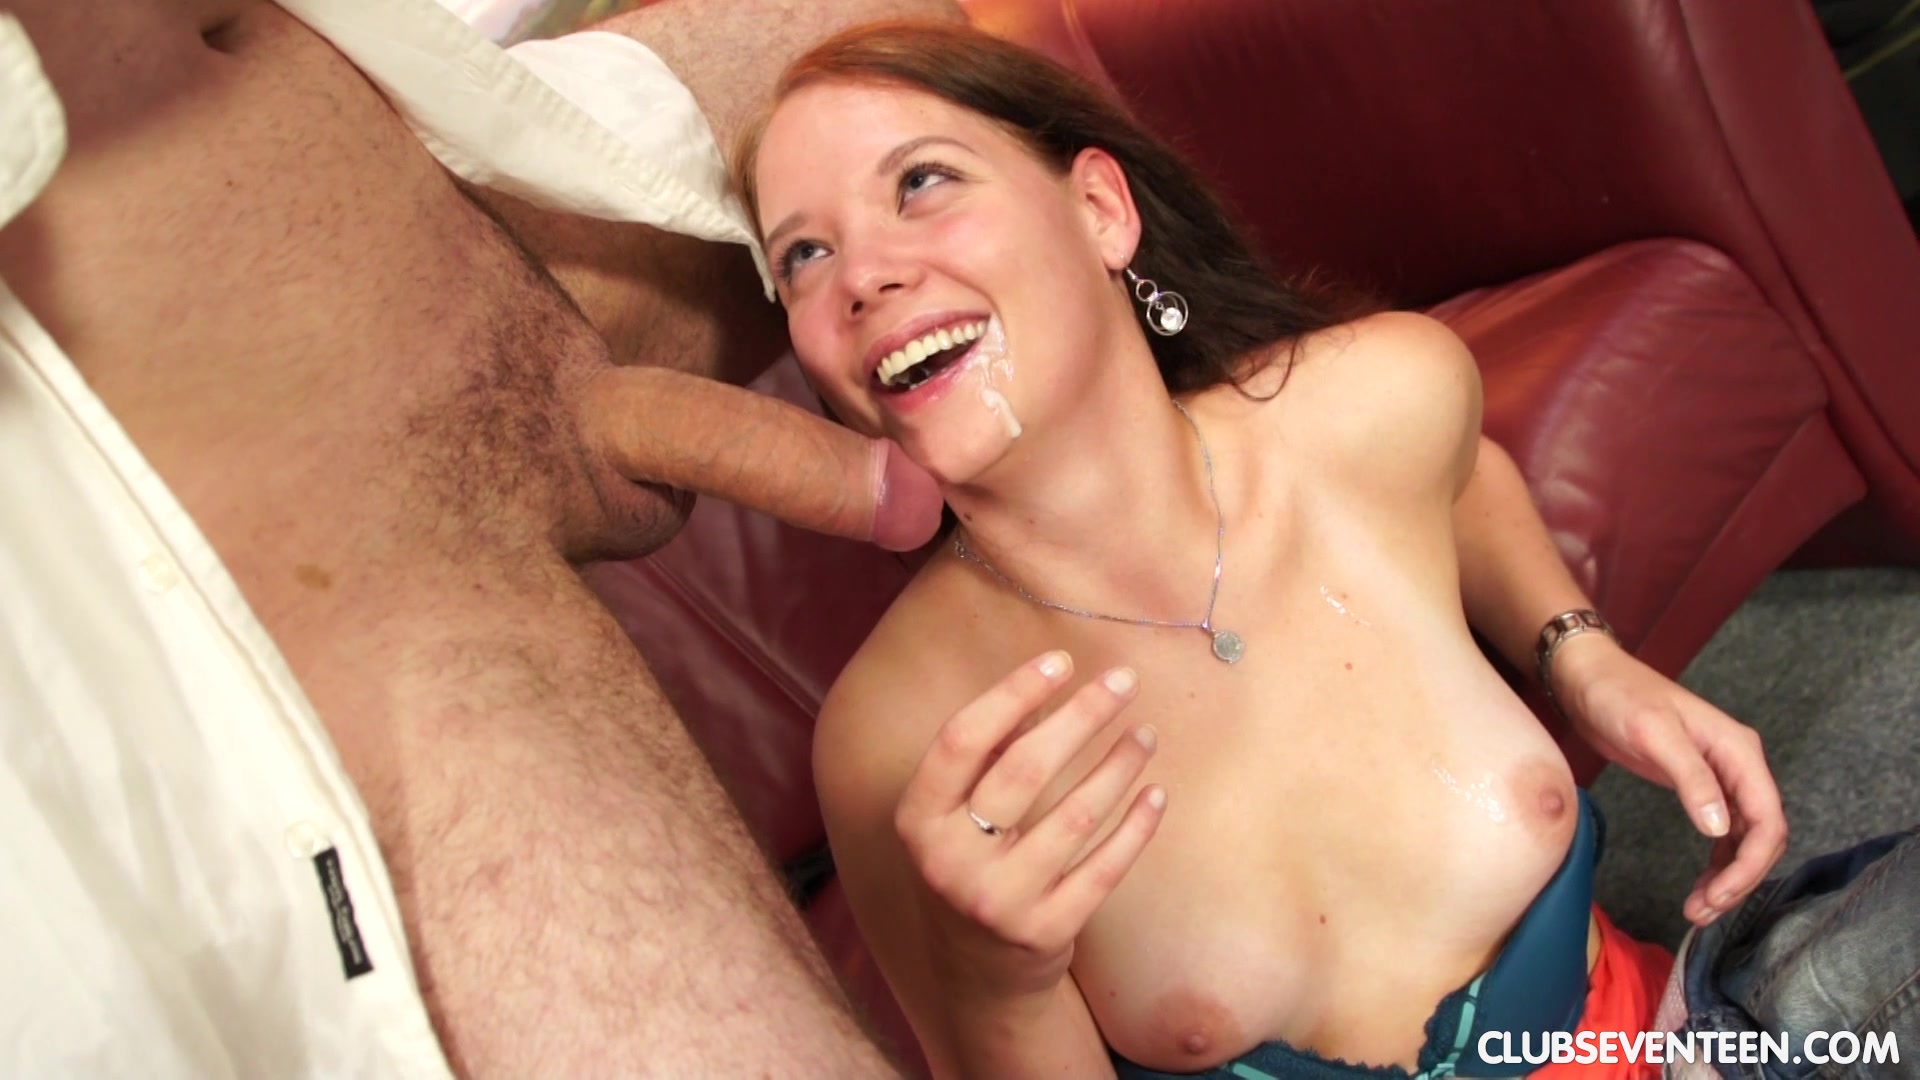 Irene D lets a horny guy drill her wet cunt from behind